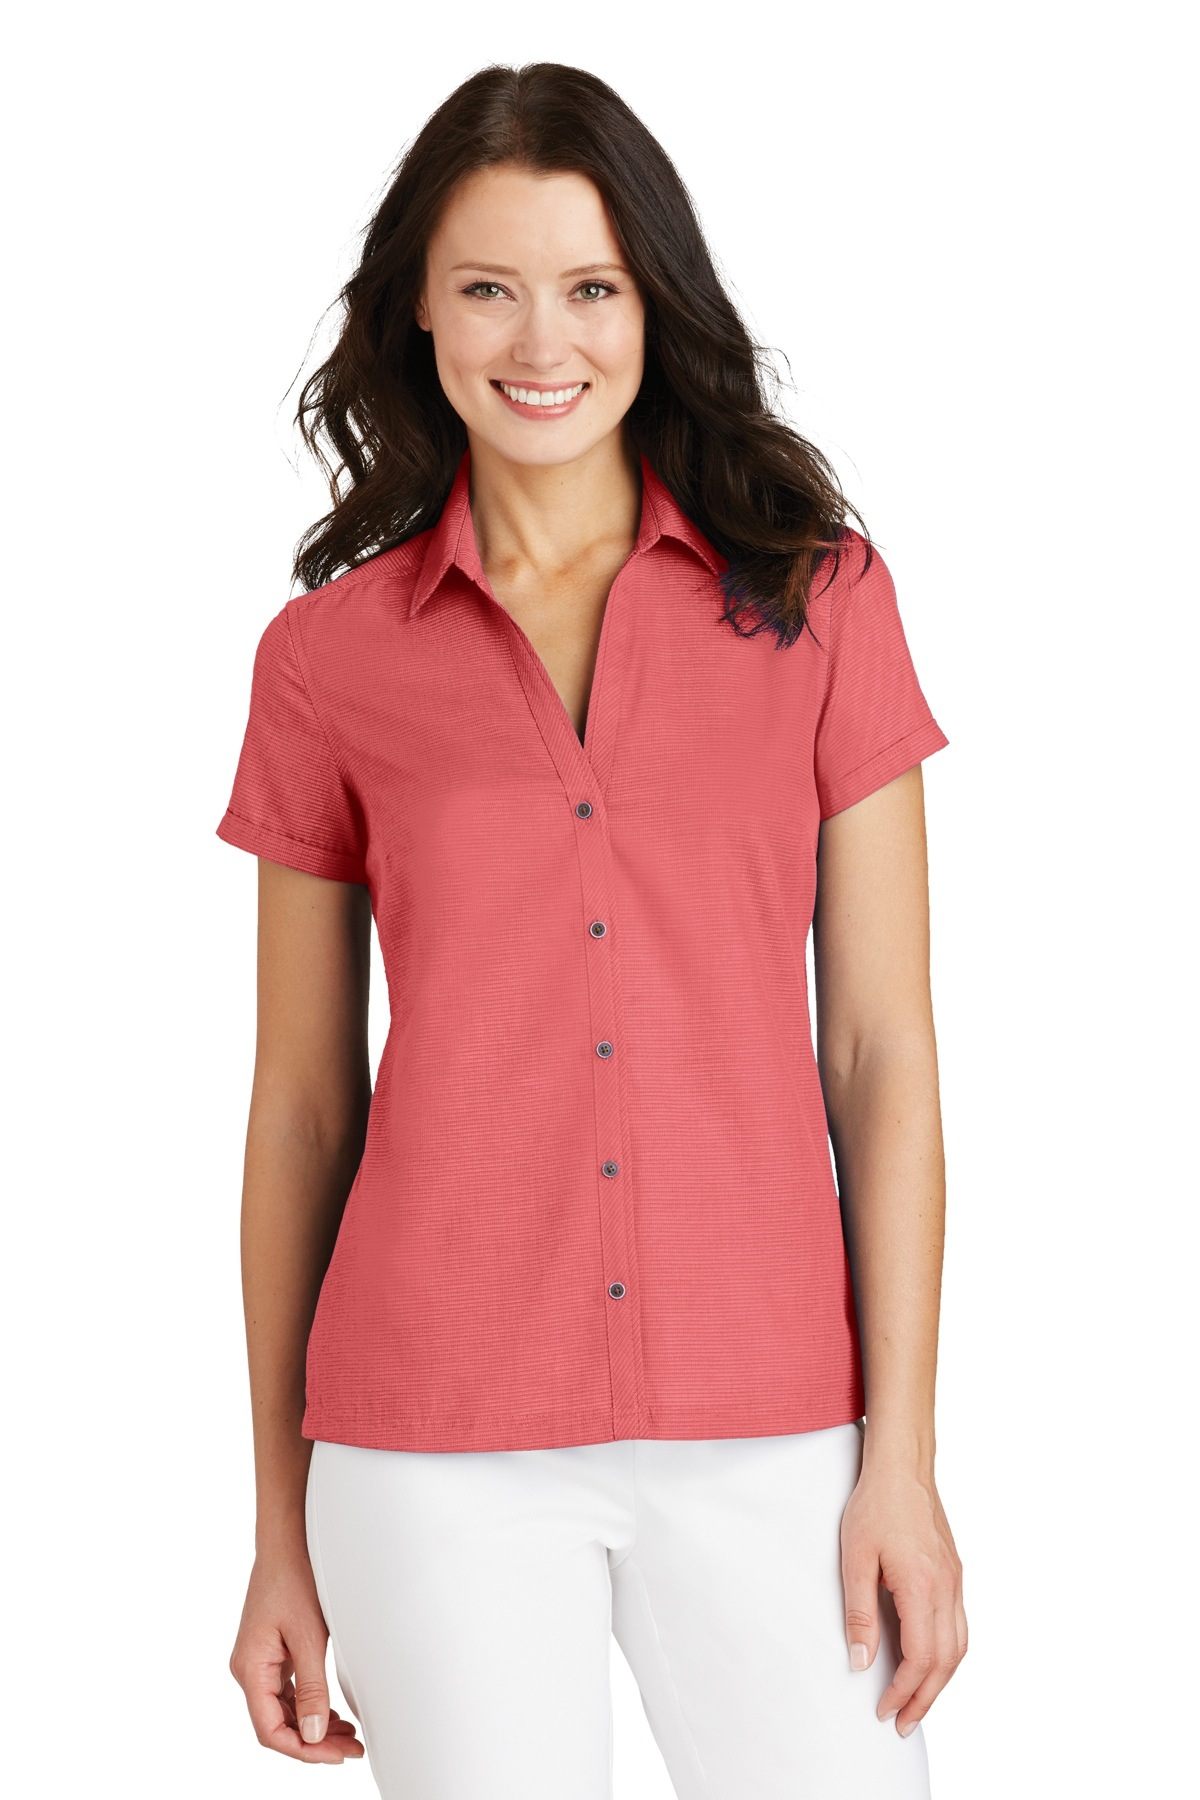 L662 Port Authority® Ladies Textured Camp Shirt